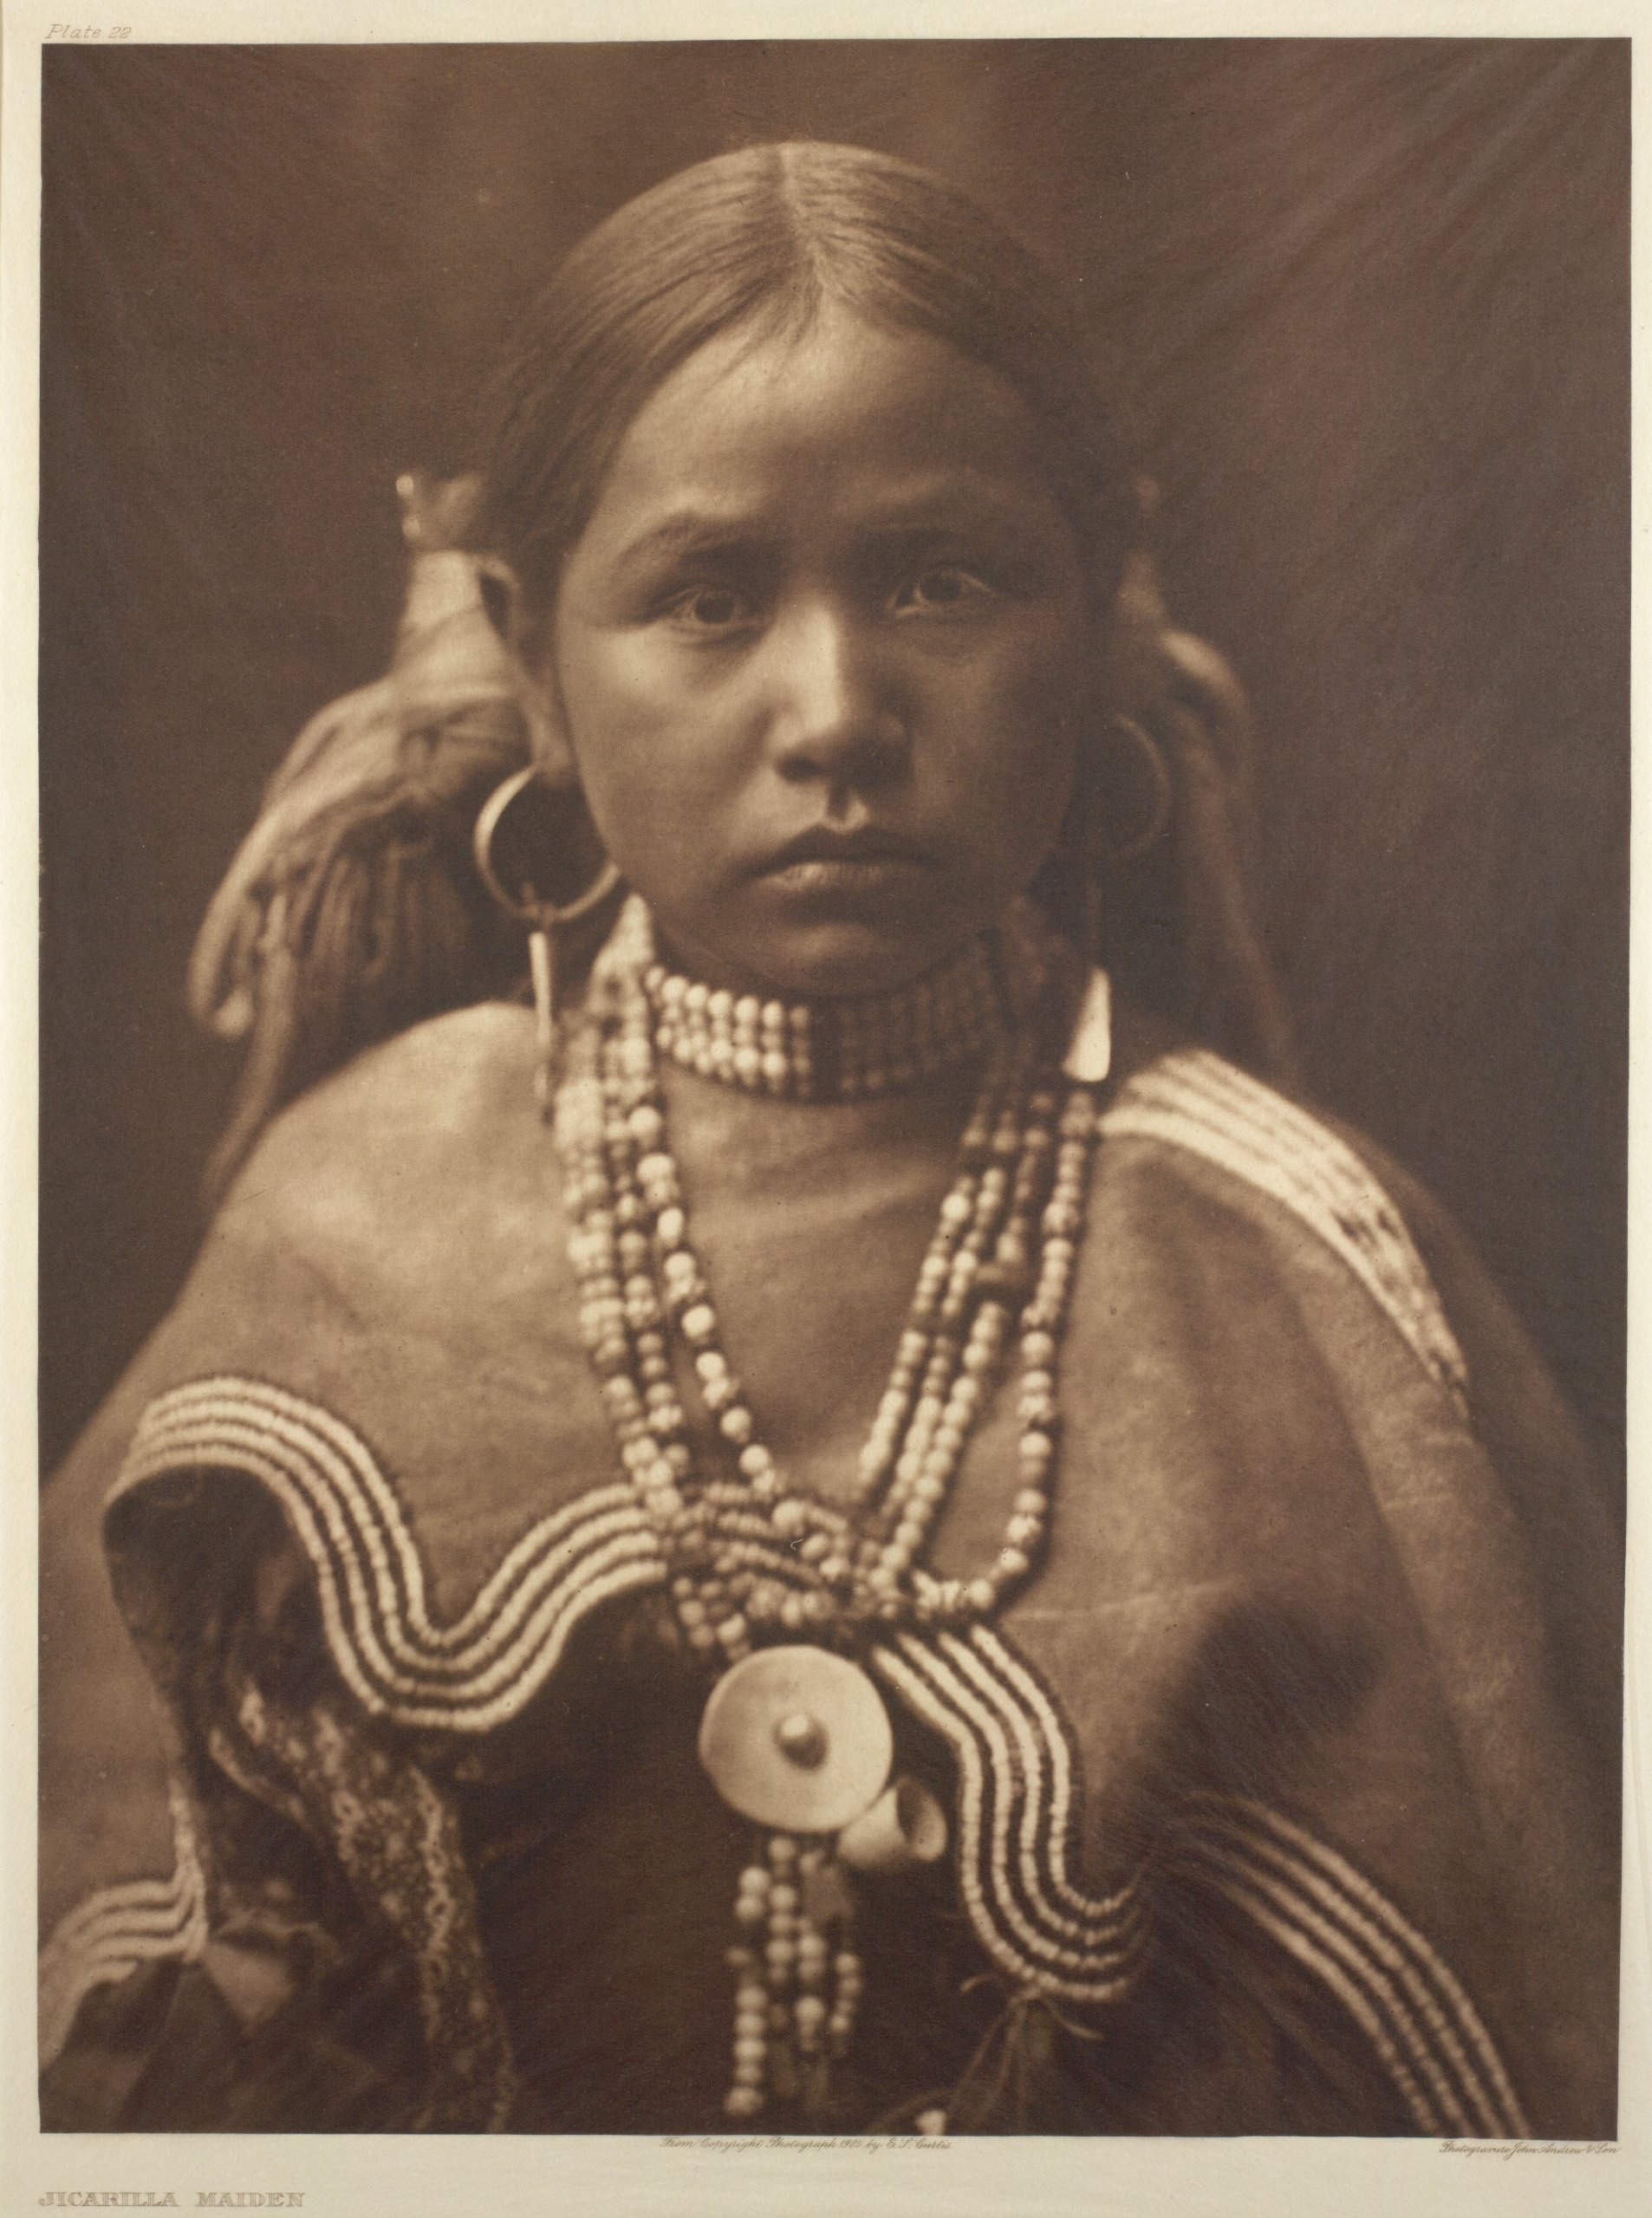 https://upload.wikimedia.org/wikipedia/commons/5/5d/Edward_S._Curtis_Collection_People_041.jpg